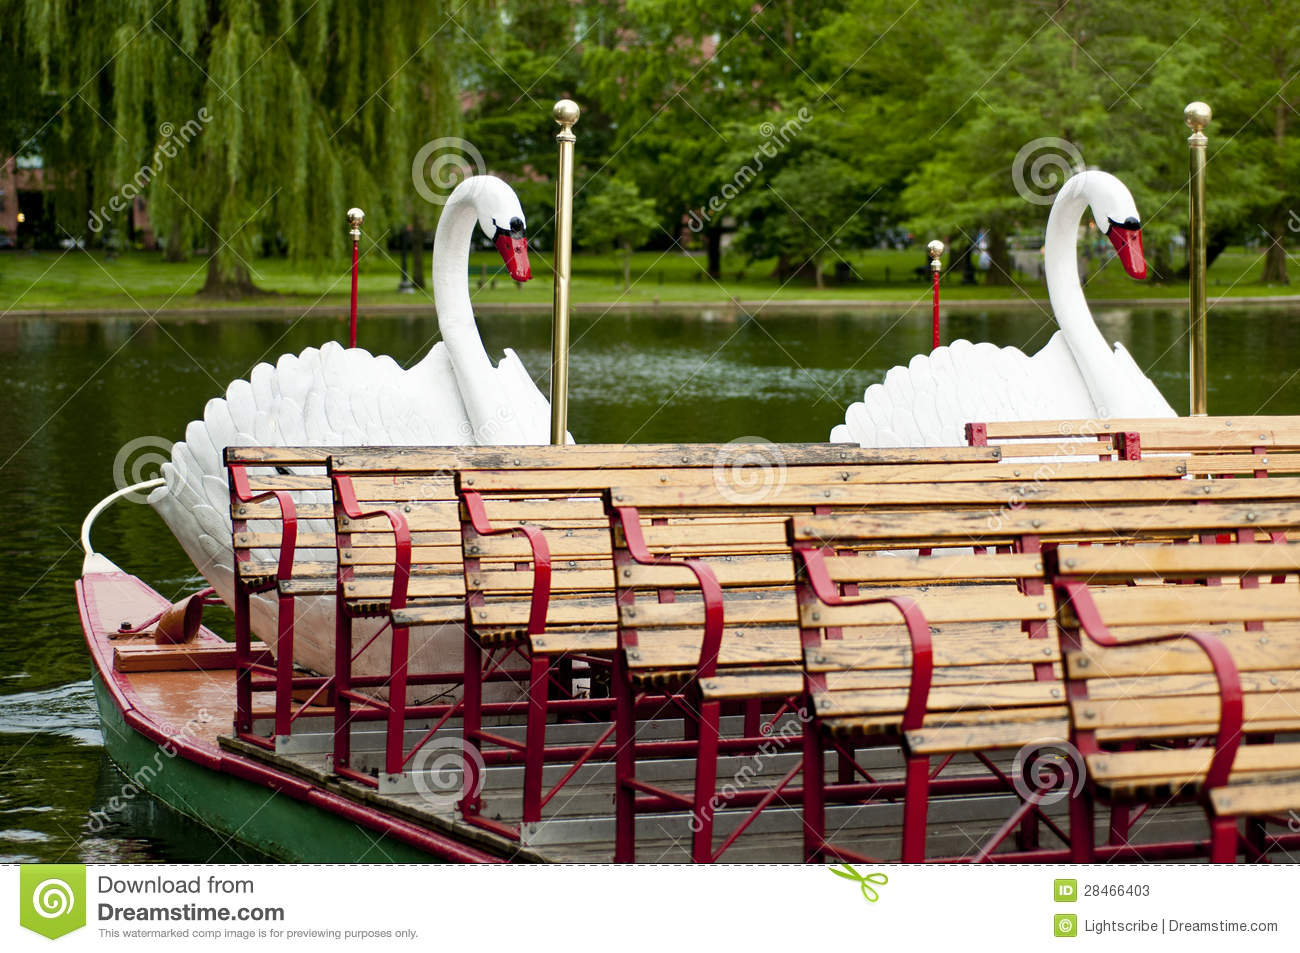 Download Boston Swan Boats stock image. Image of spring, relax - 28466403